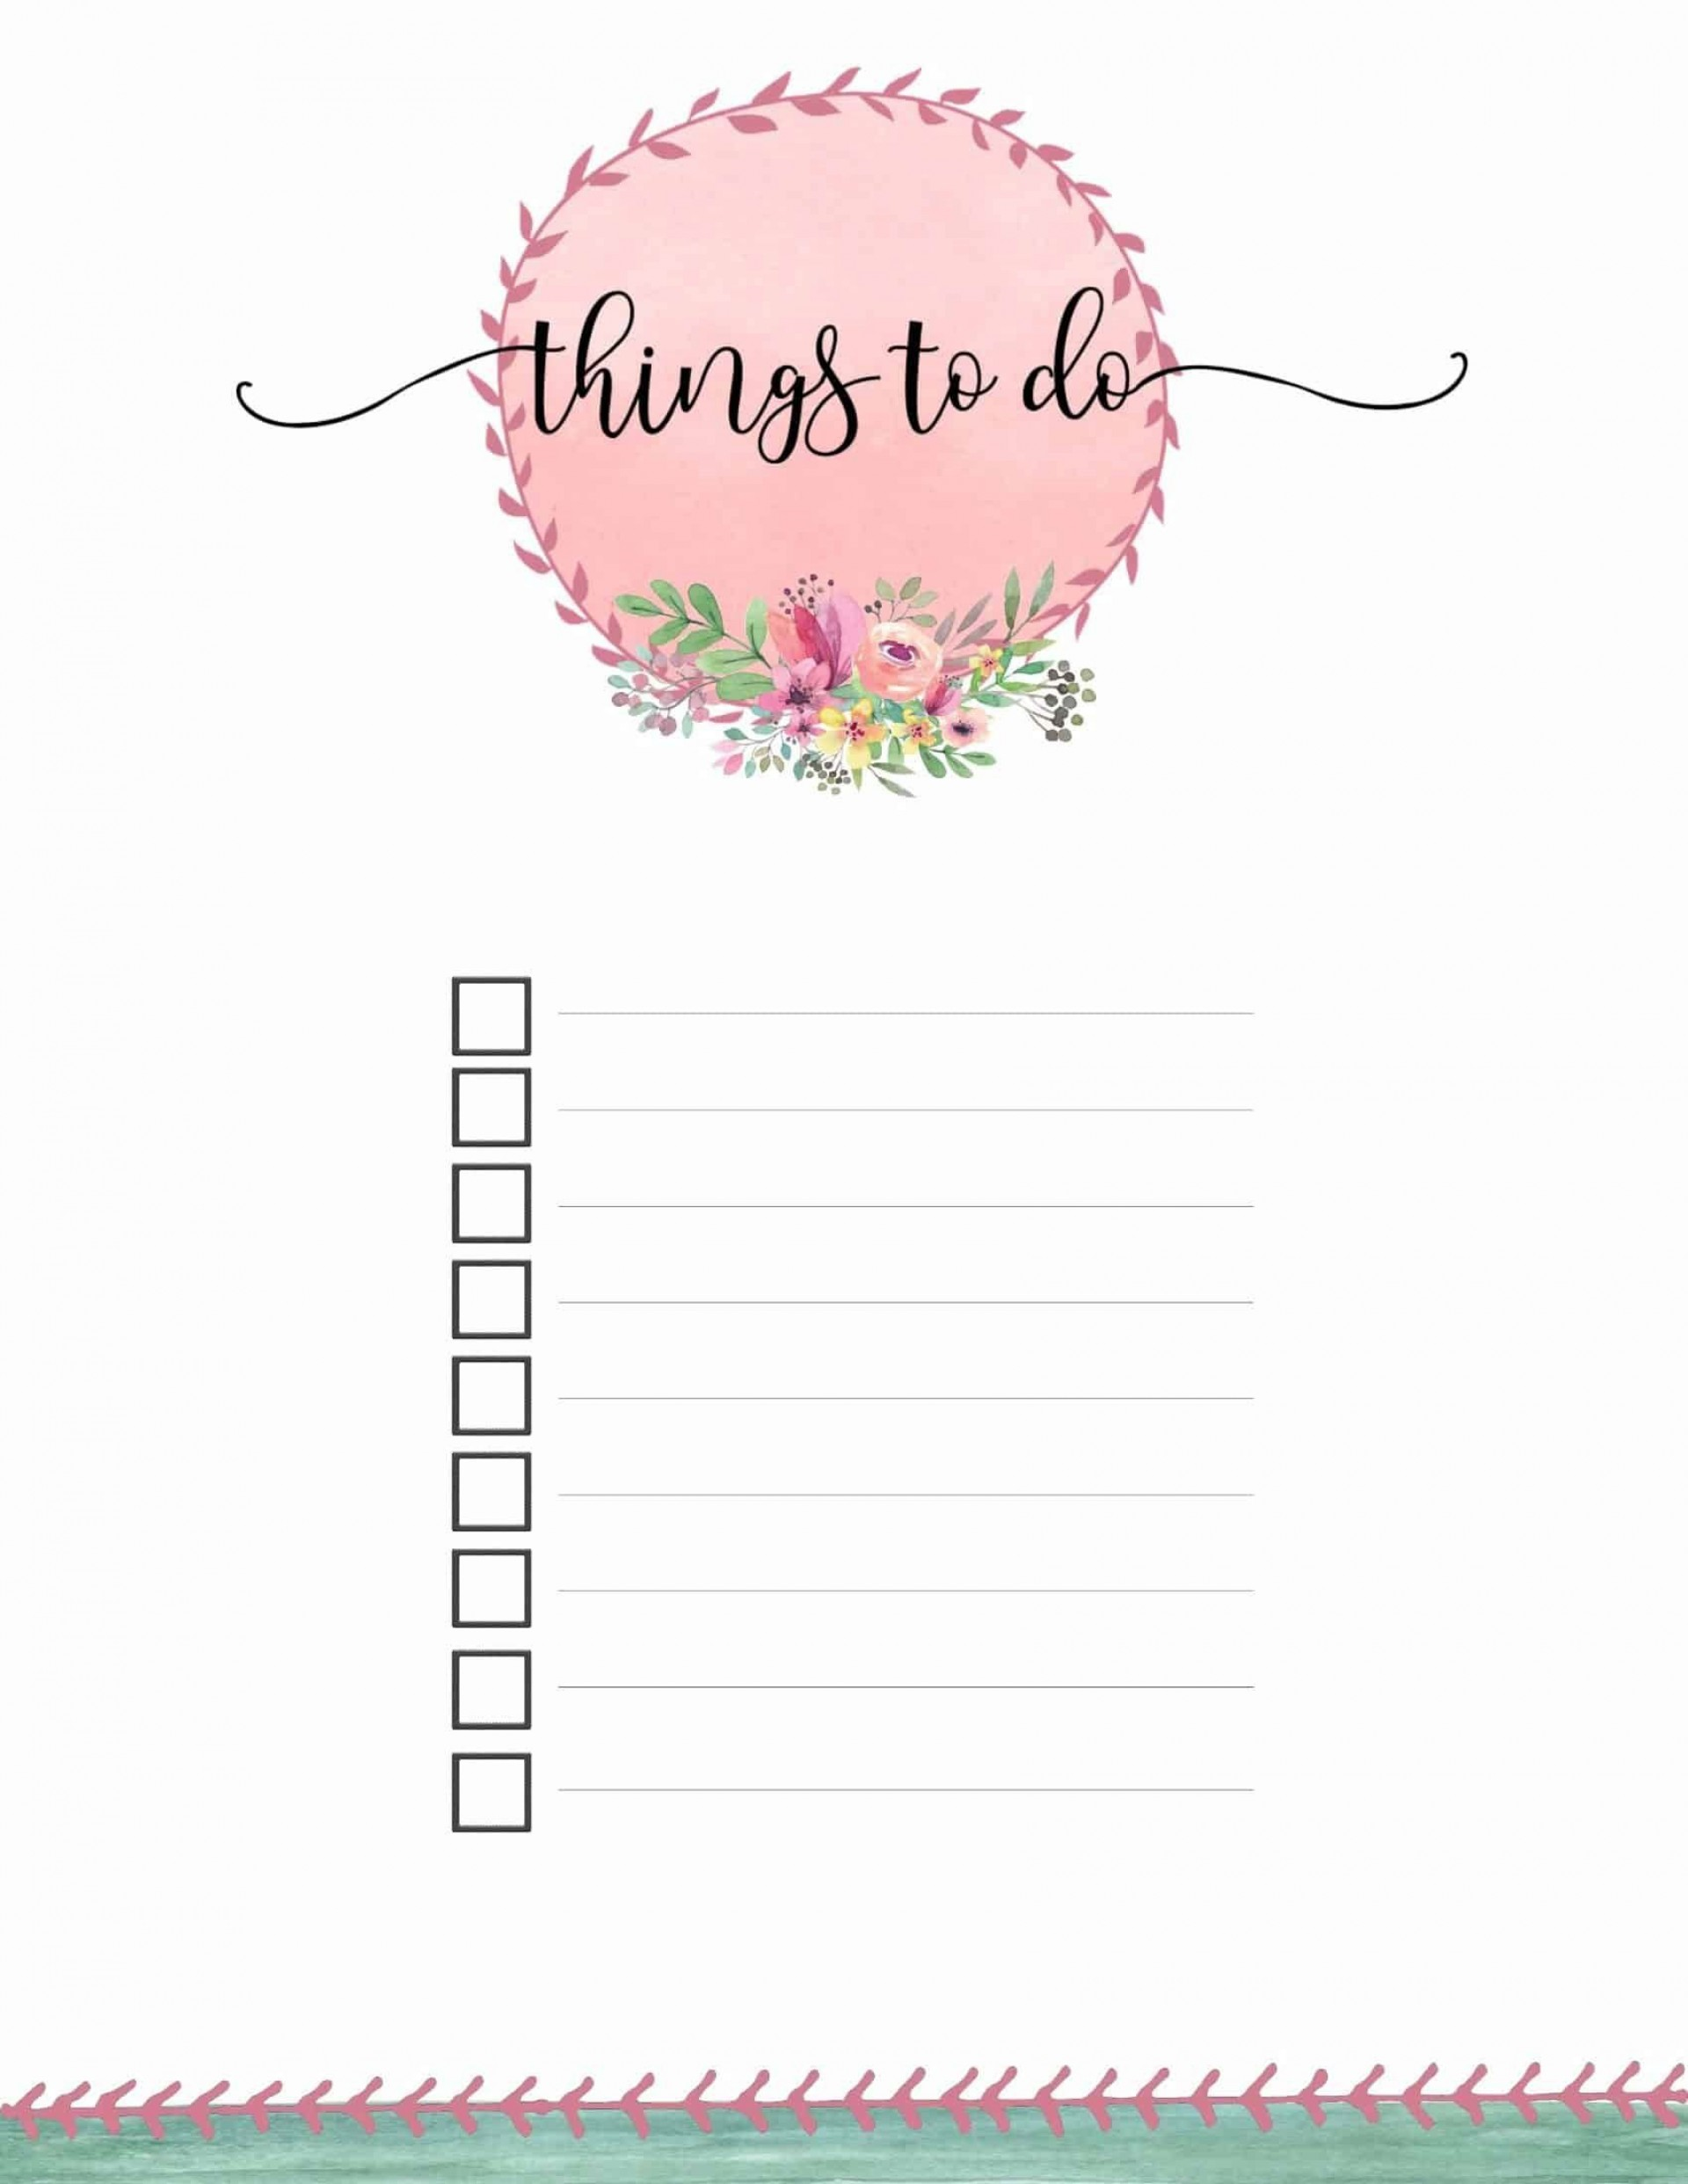 004 Remarkable Thing To Do List Template Example 1920